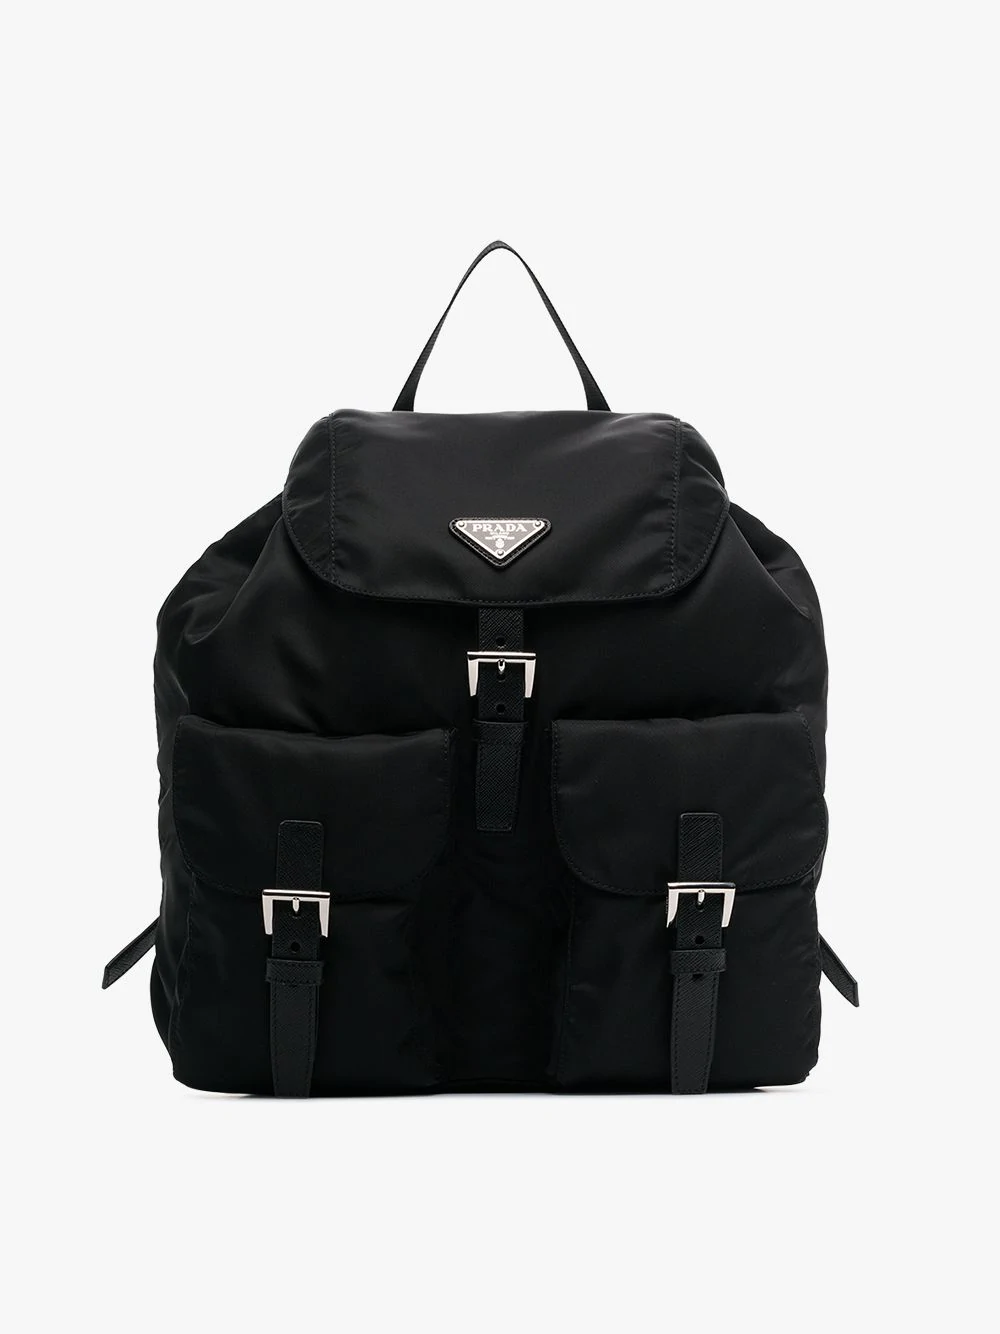 ffda04b4f0540 Prada Vela Large Two-Pocket Backpack